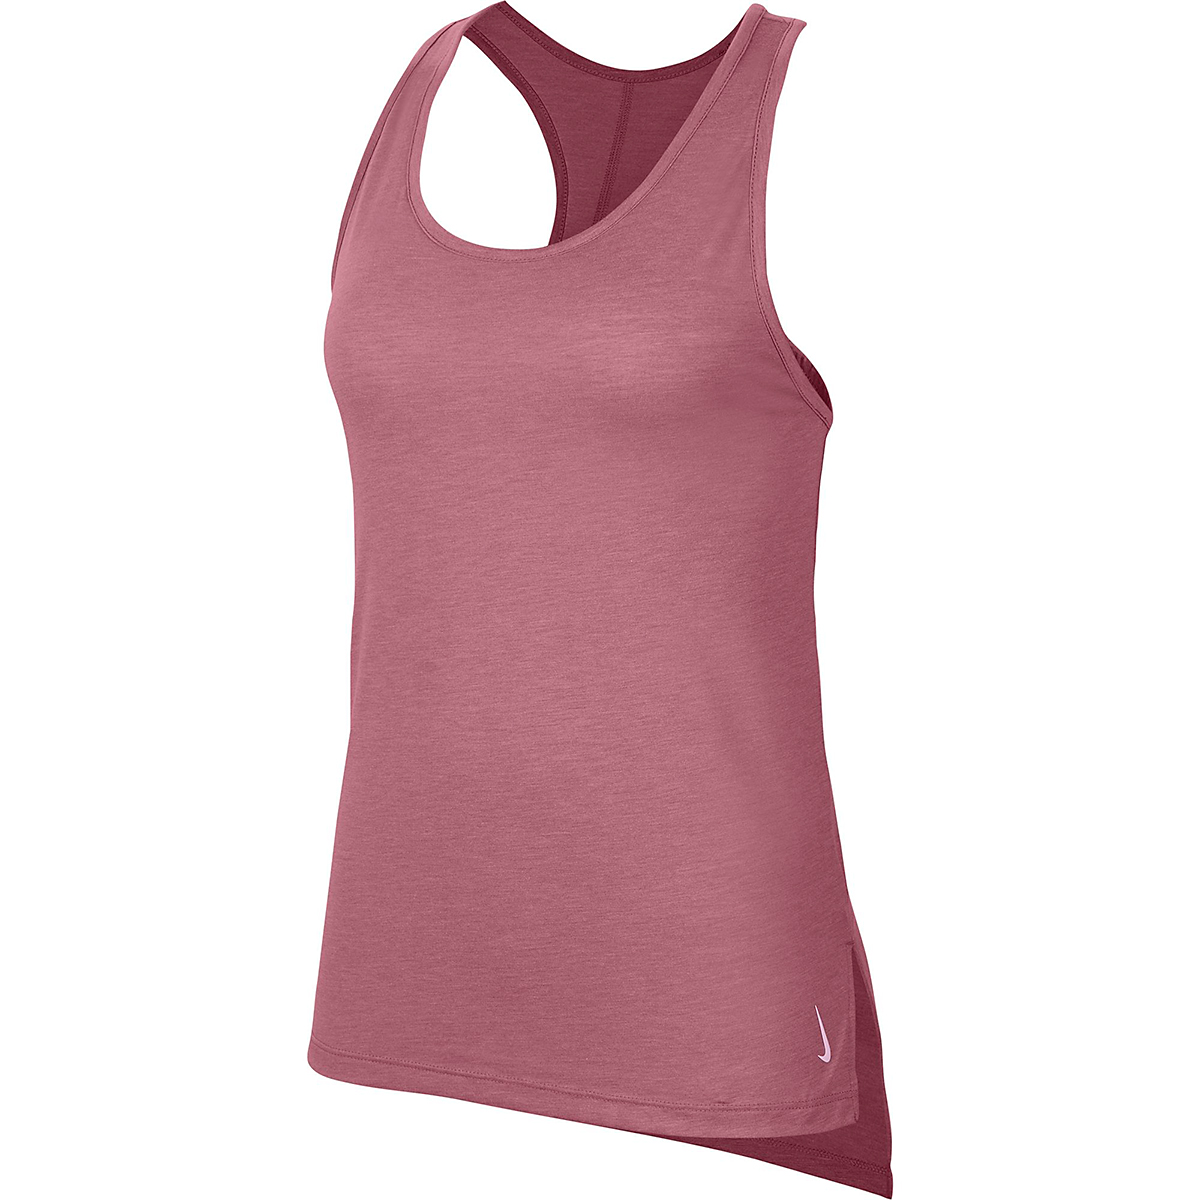 Women's Nike Yoga Layer Tank - Color: Desert Berry/Heather/Lite Arctic Pink - Size: M, Desert Berry/Heather/Lite Arctic Pink, large, image 3